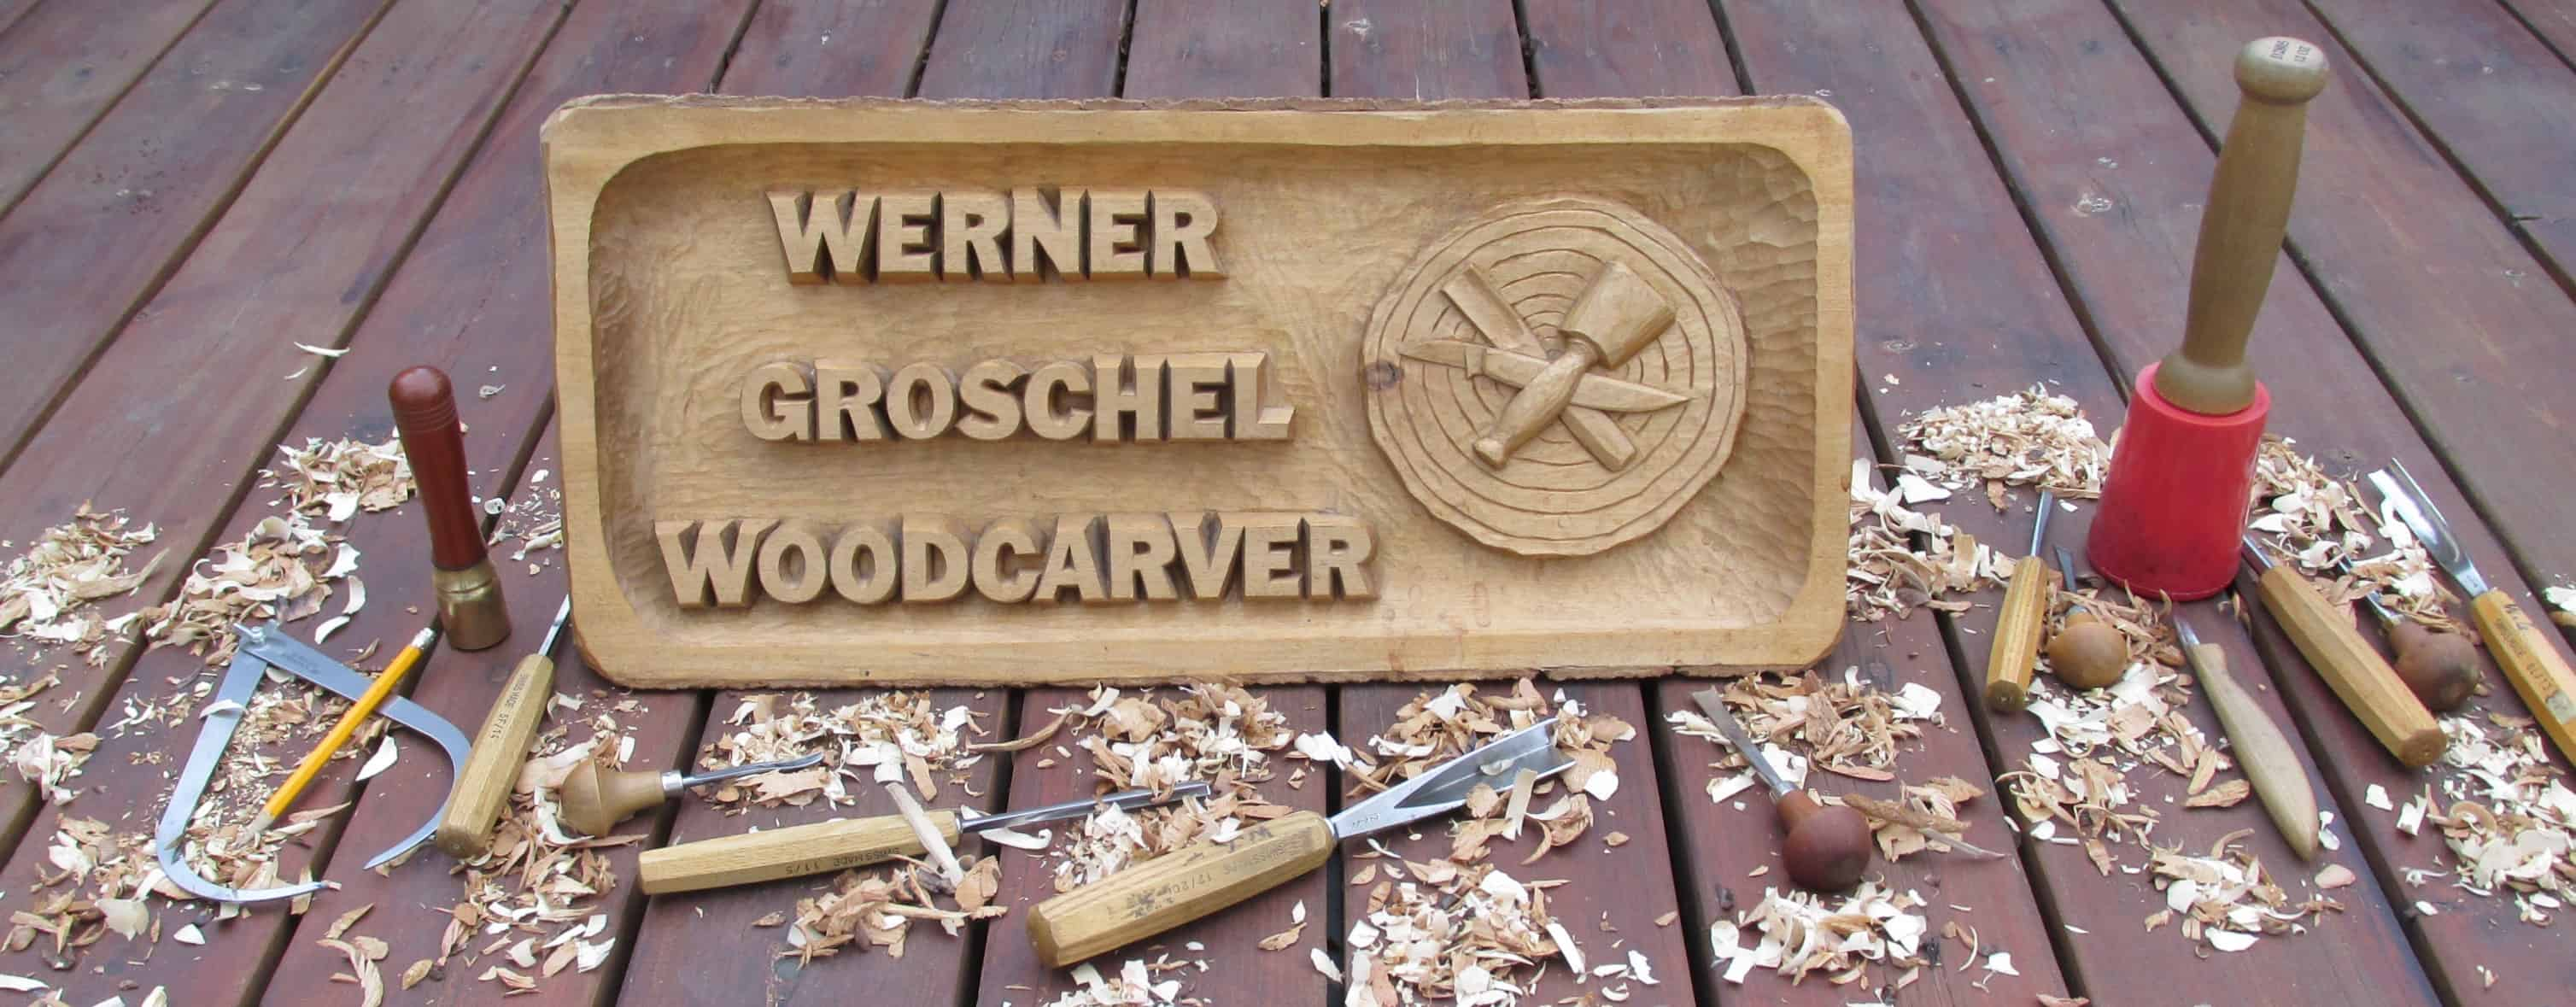 Groeschel Woodcarving